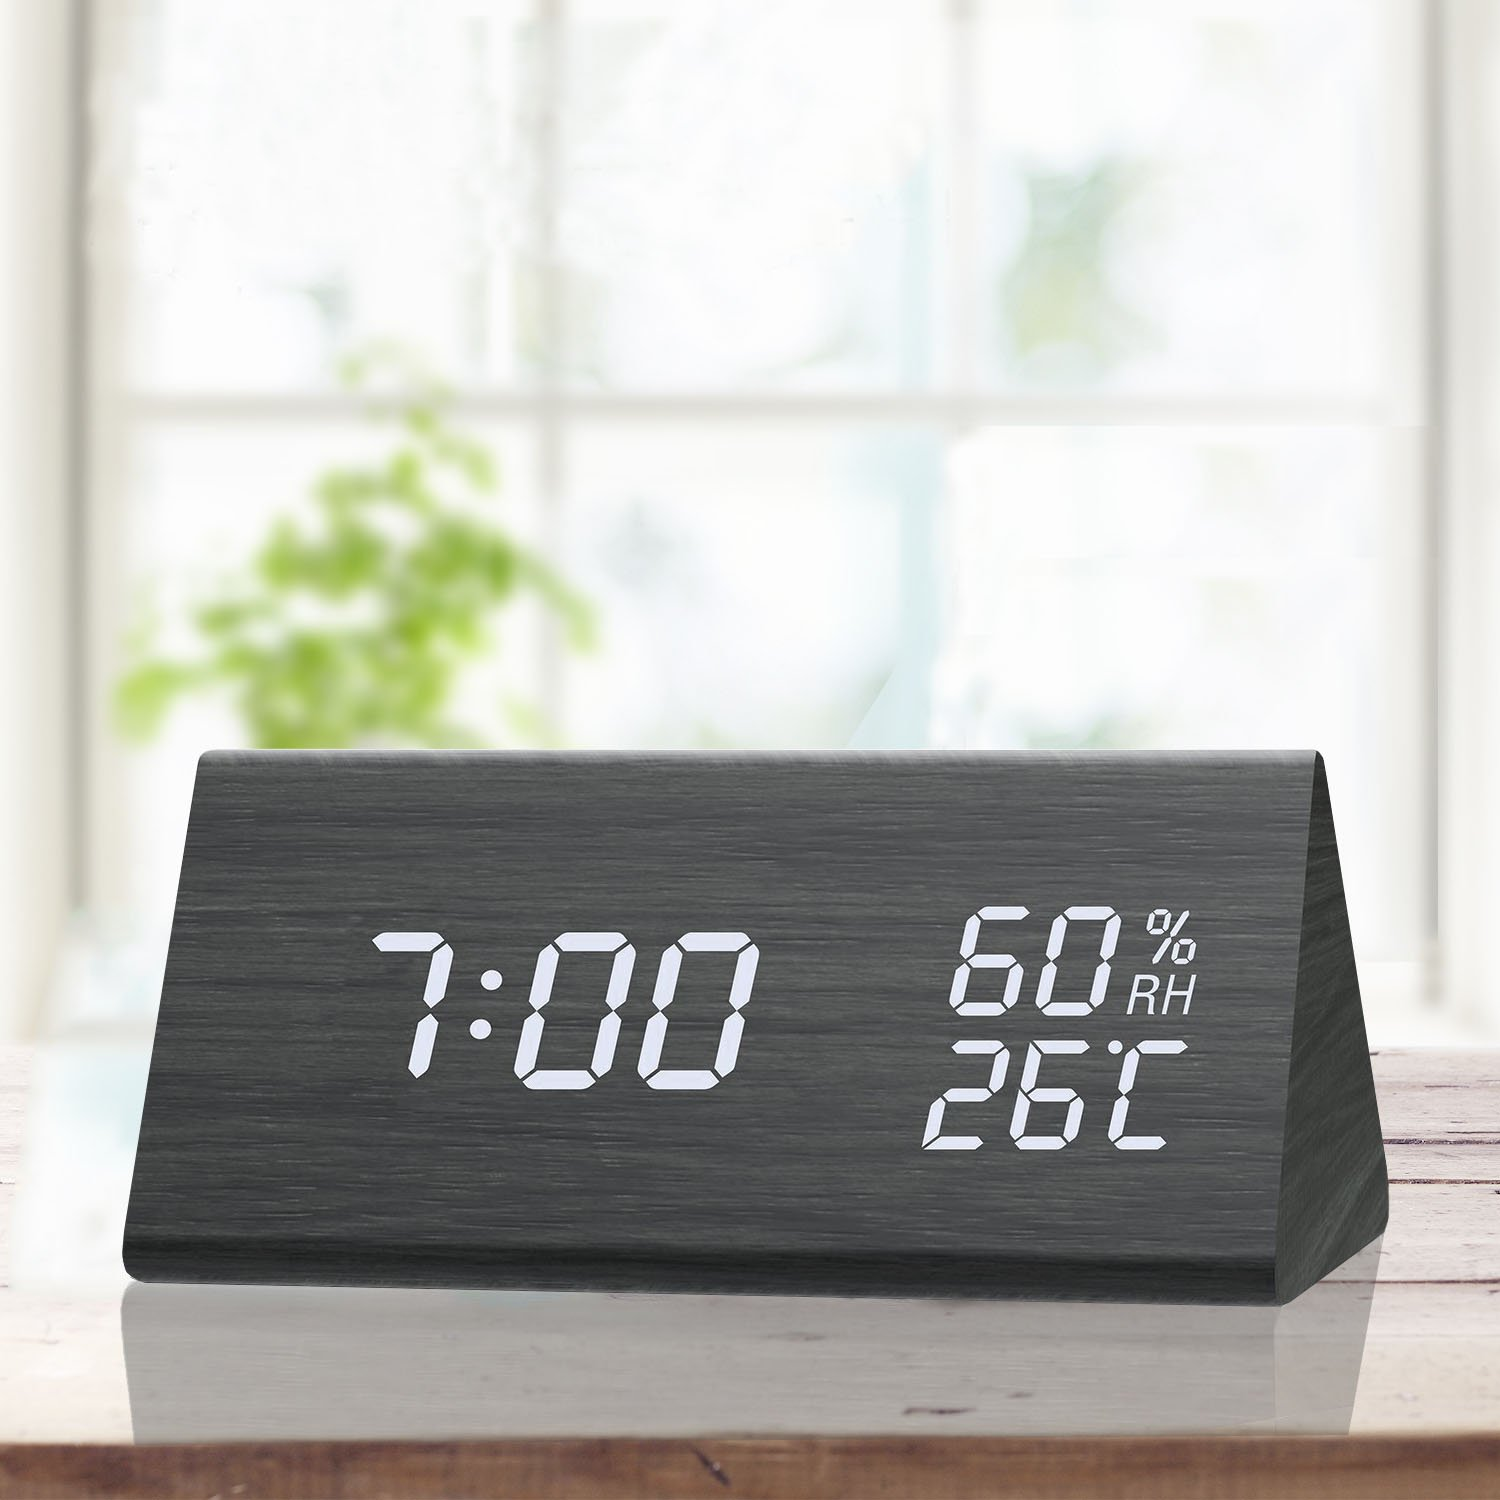 Bedside Kids and Heavy Sleeper Batteries Not Needed Digital Alarm Clock 3 Alarm Settings with Wooden Electronic LED Time Display Dual Temperature & Humidity Detect Ideal for Bedroom (TooTa02) by TooTa